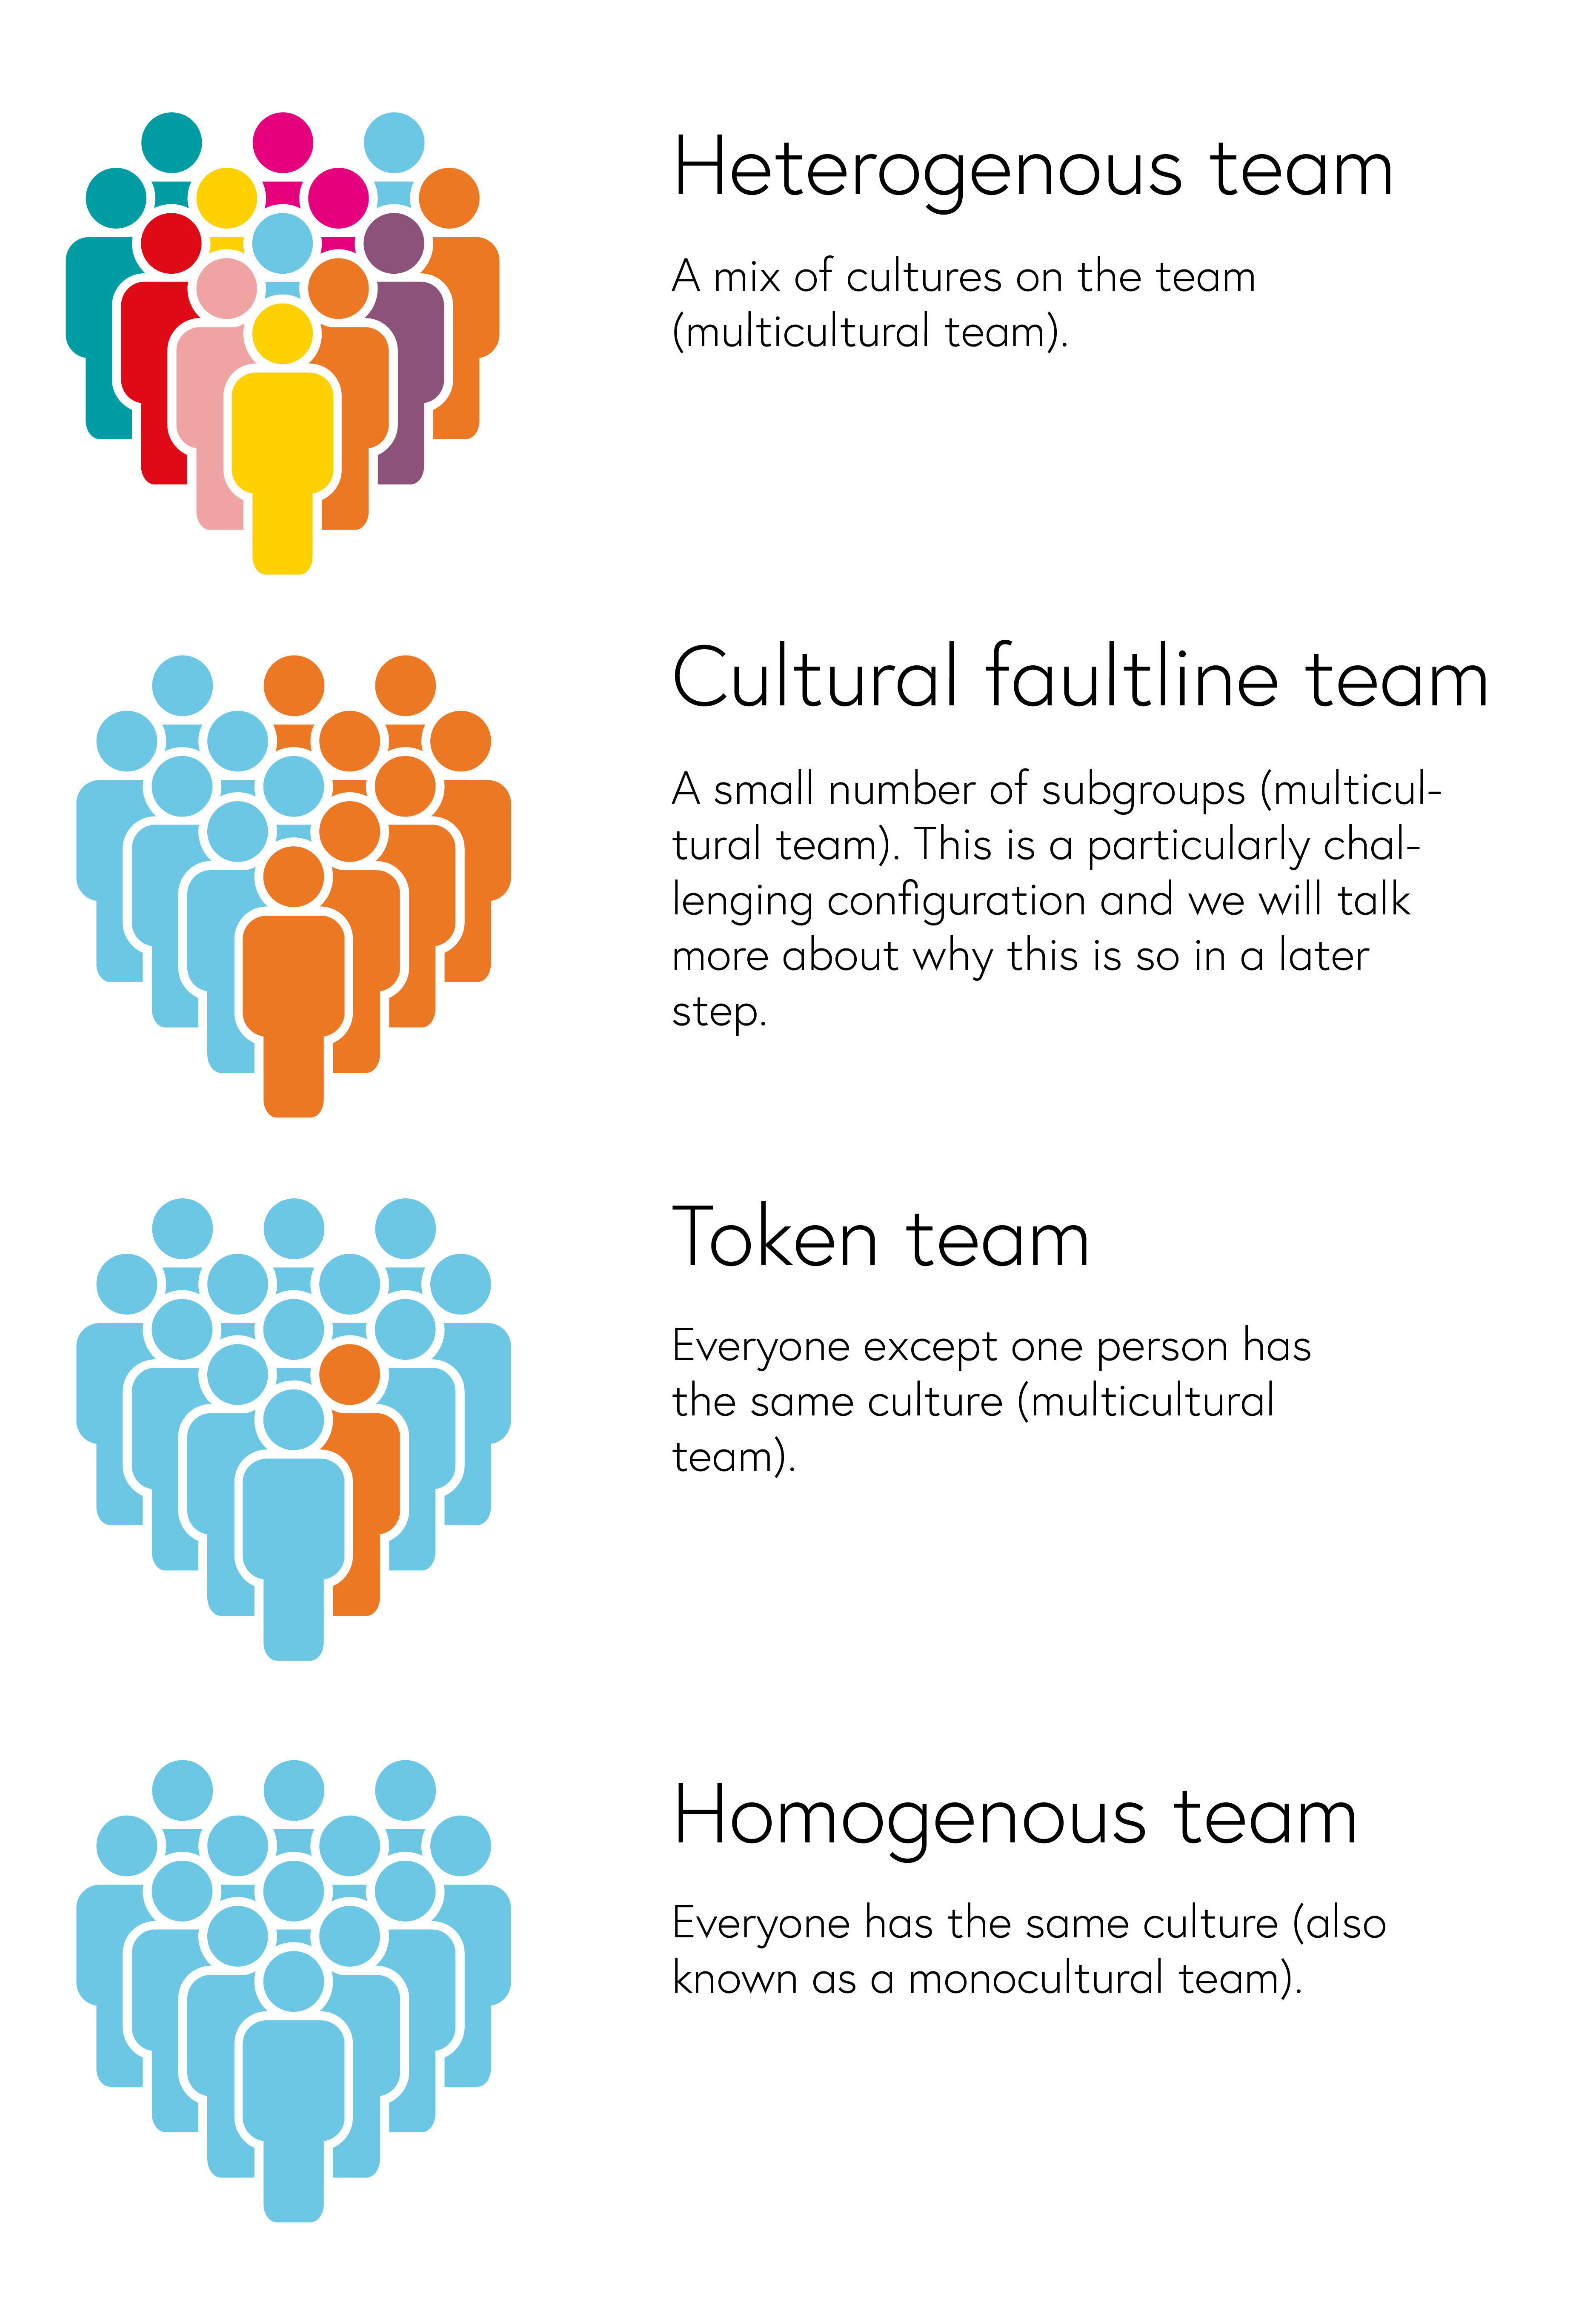 Visual representation of cultural diversity team types. Groups of people colour-coded to represent the following. Heterogenous team: A mix of different cultures; Cultural faultline team: A small number of subgroups of cultures; Token team: everybody except one person has the same culture; Homogenous team: Everyone has the same culture.